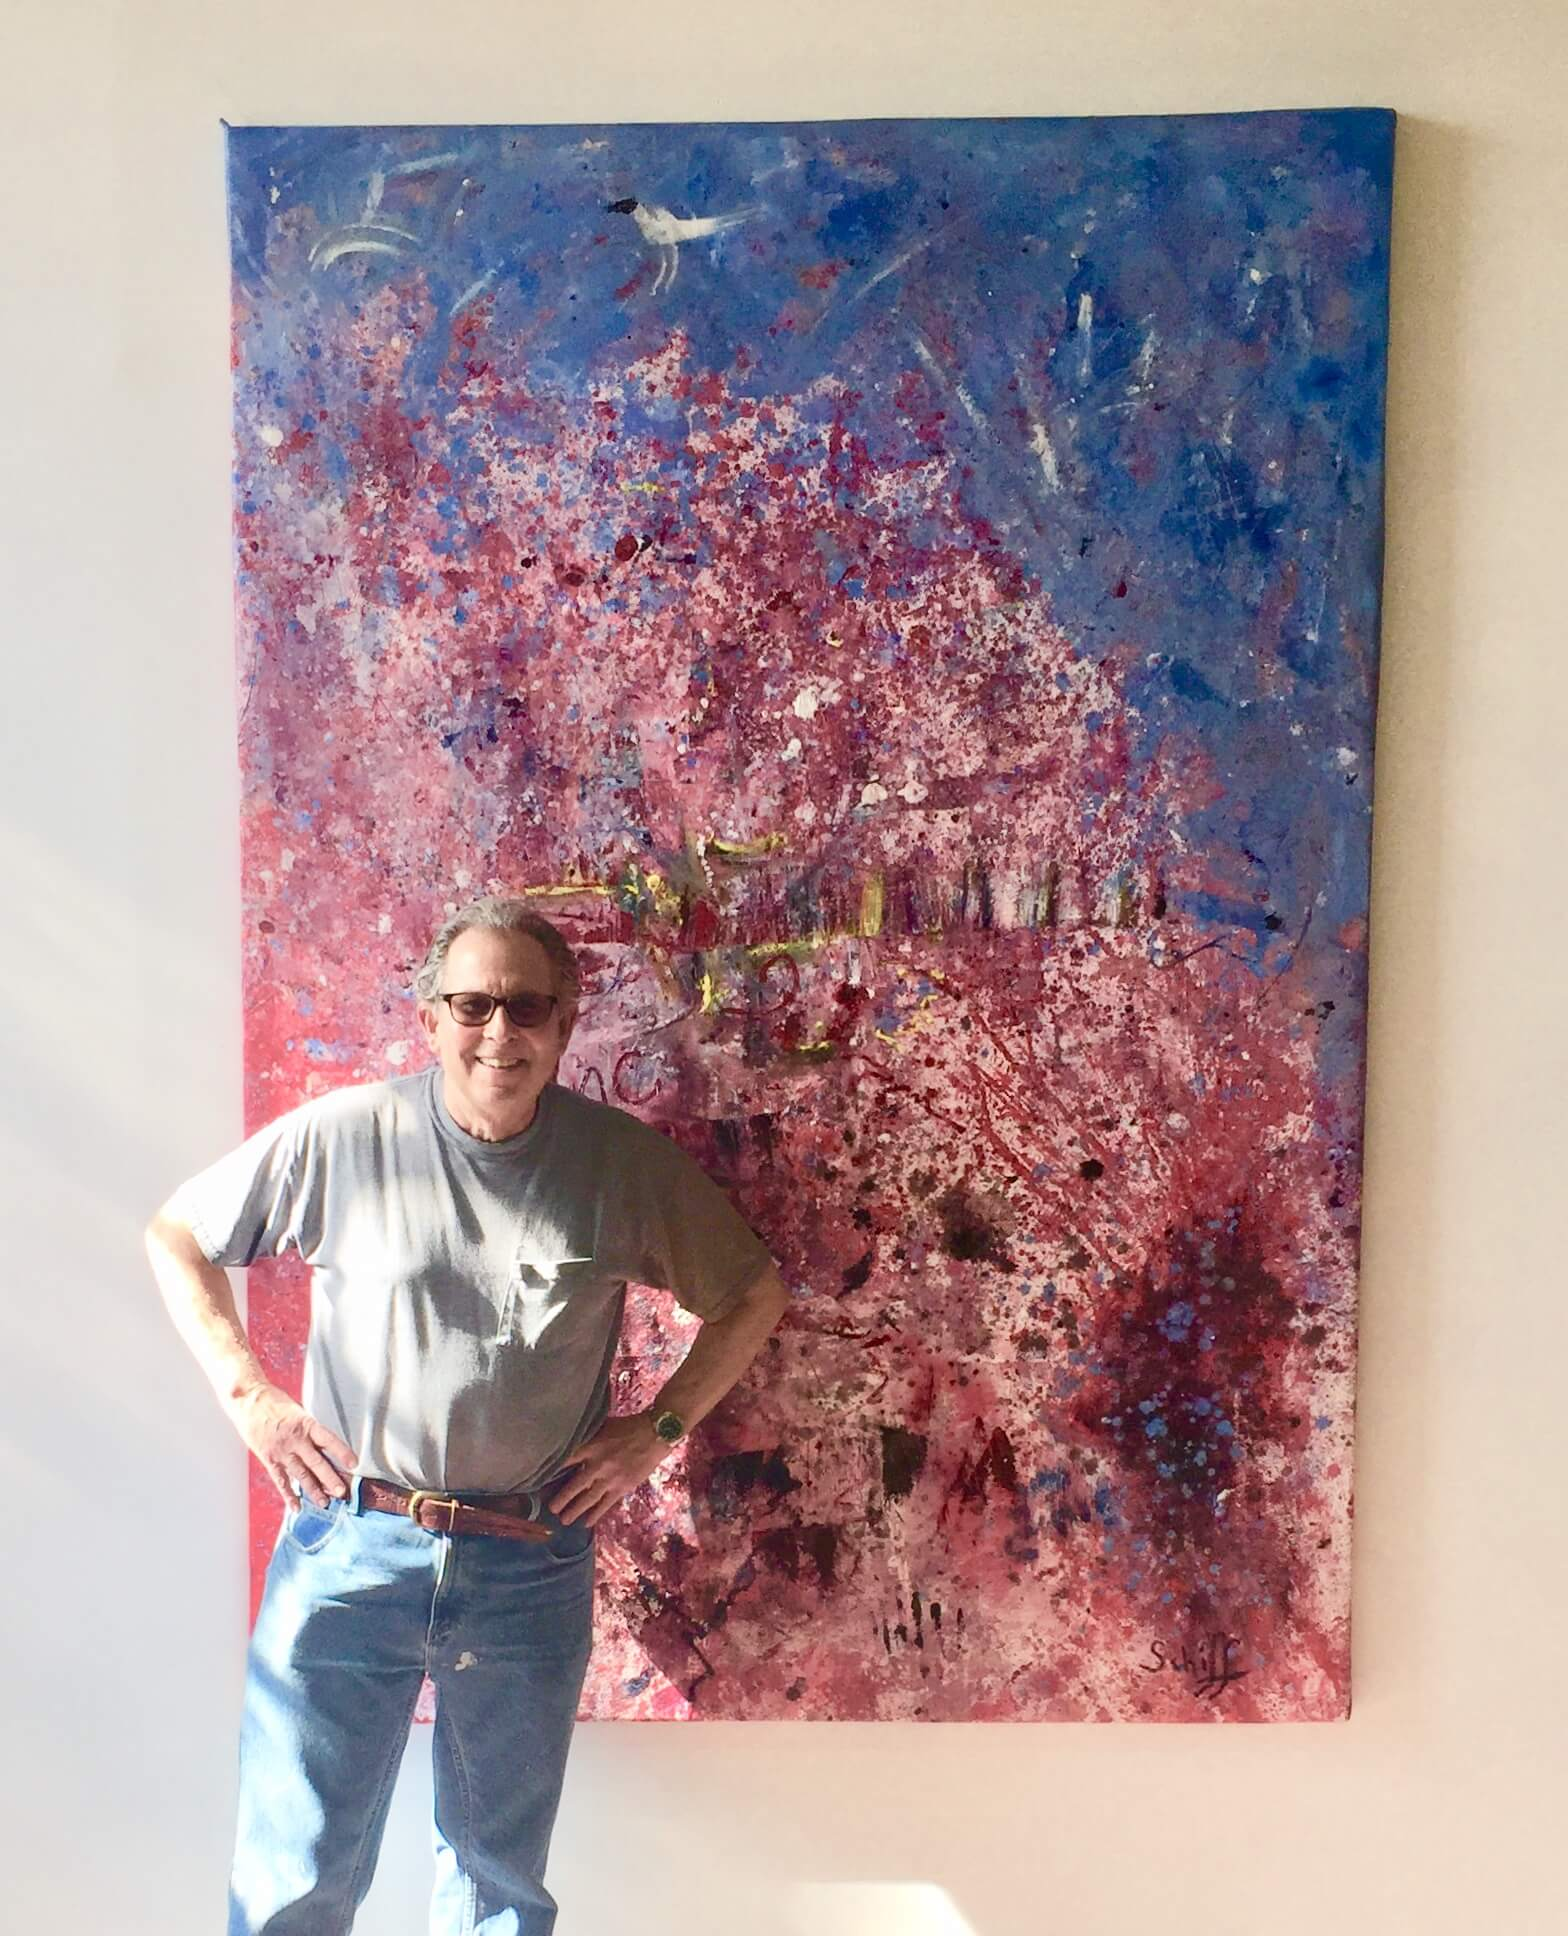 Mark Schiff in front of painting